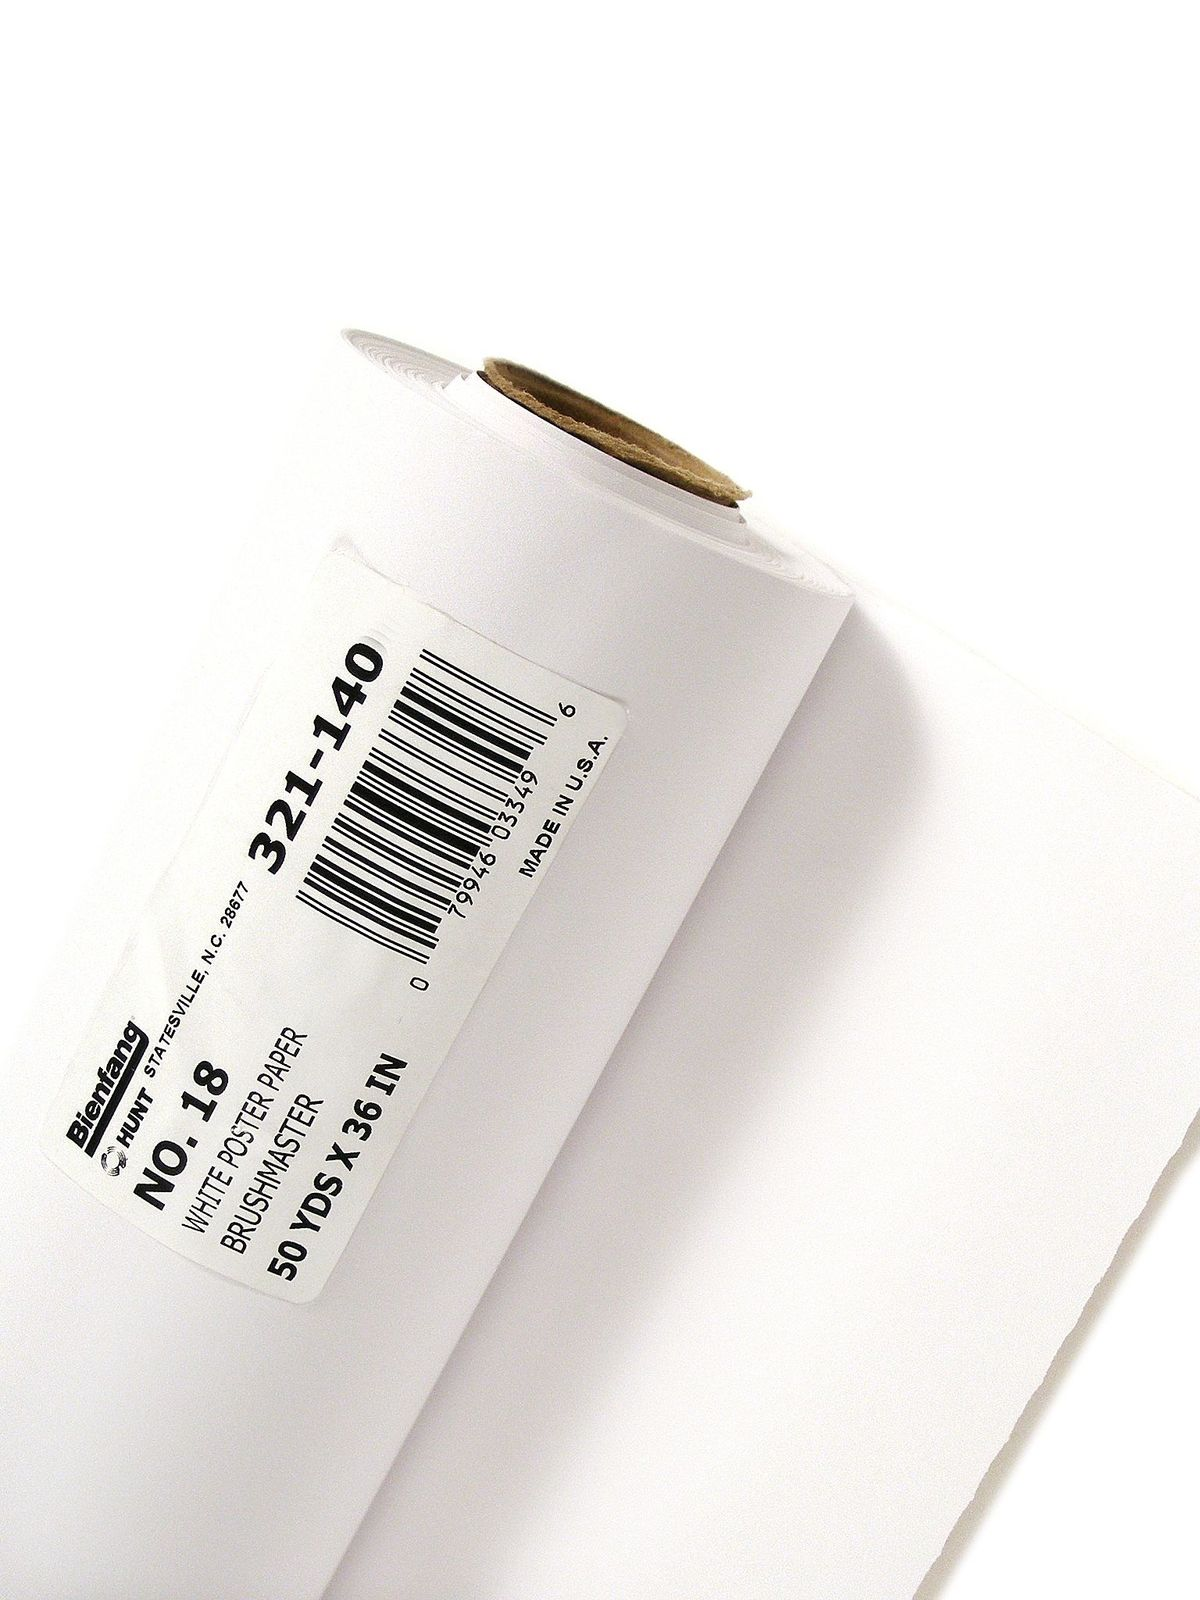 No. 18 White Poster Paper Roll